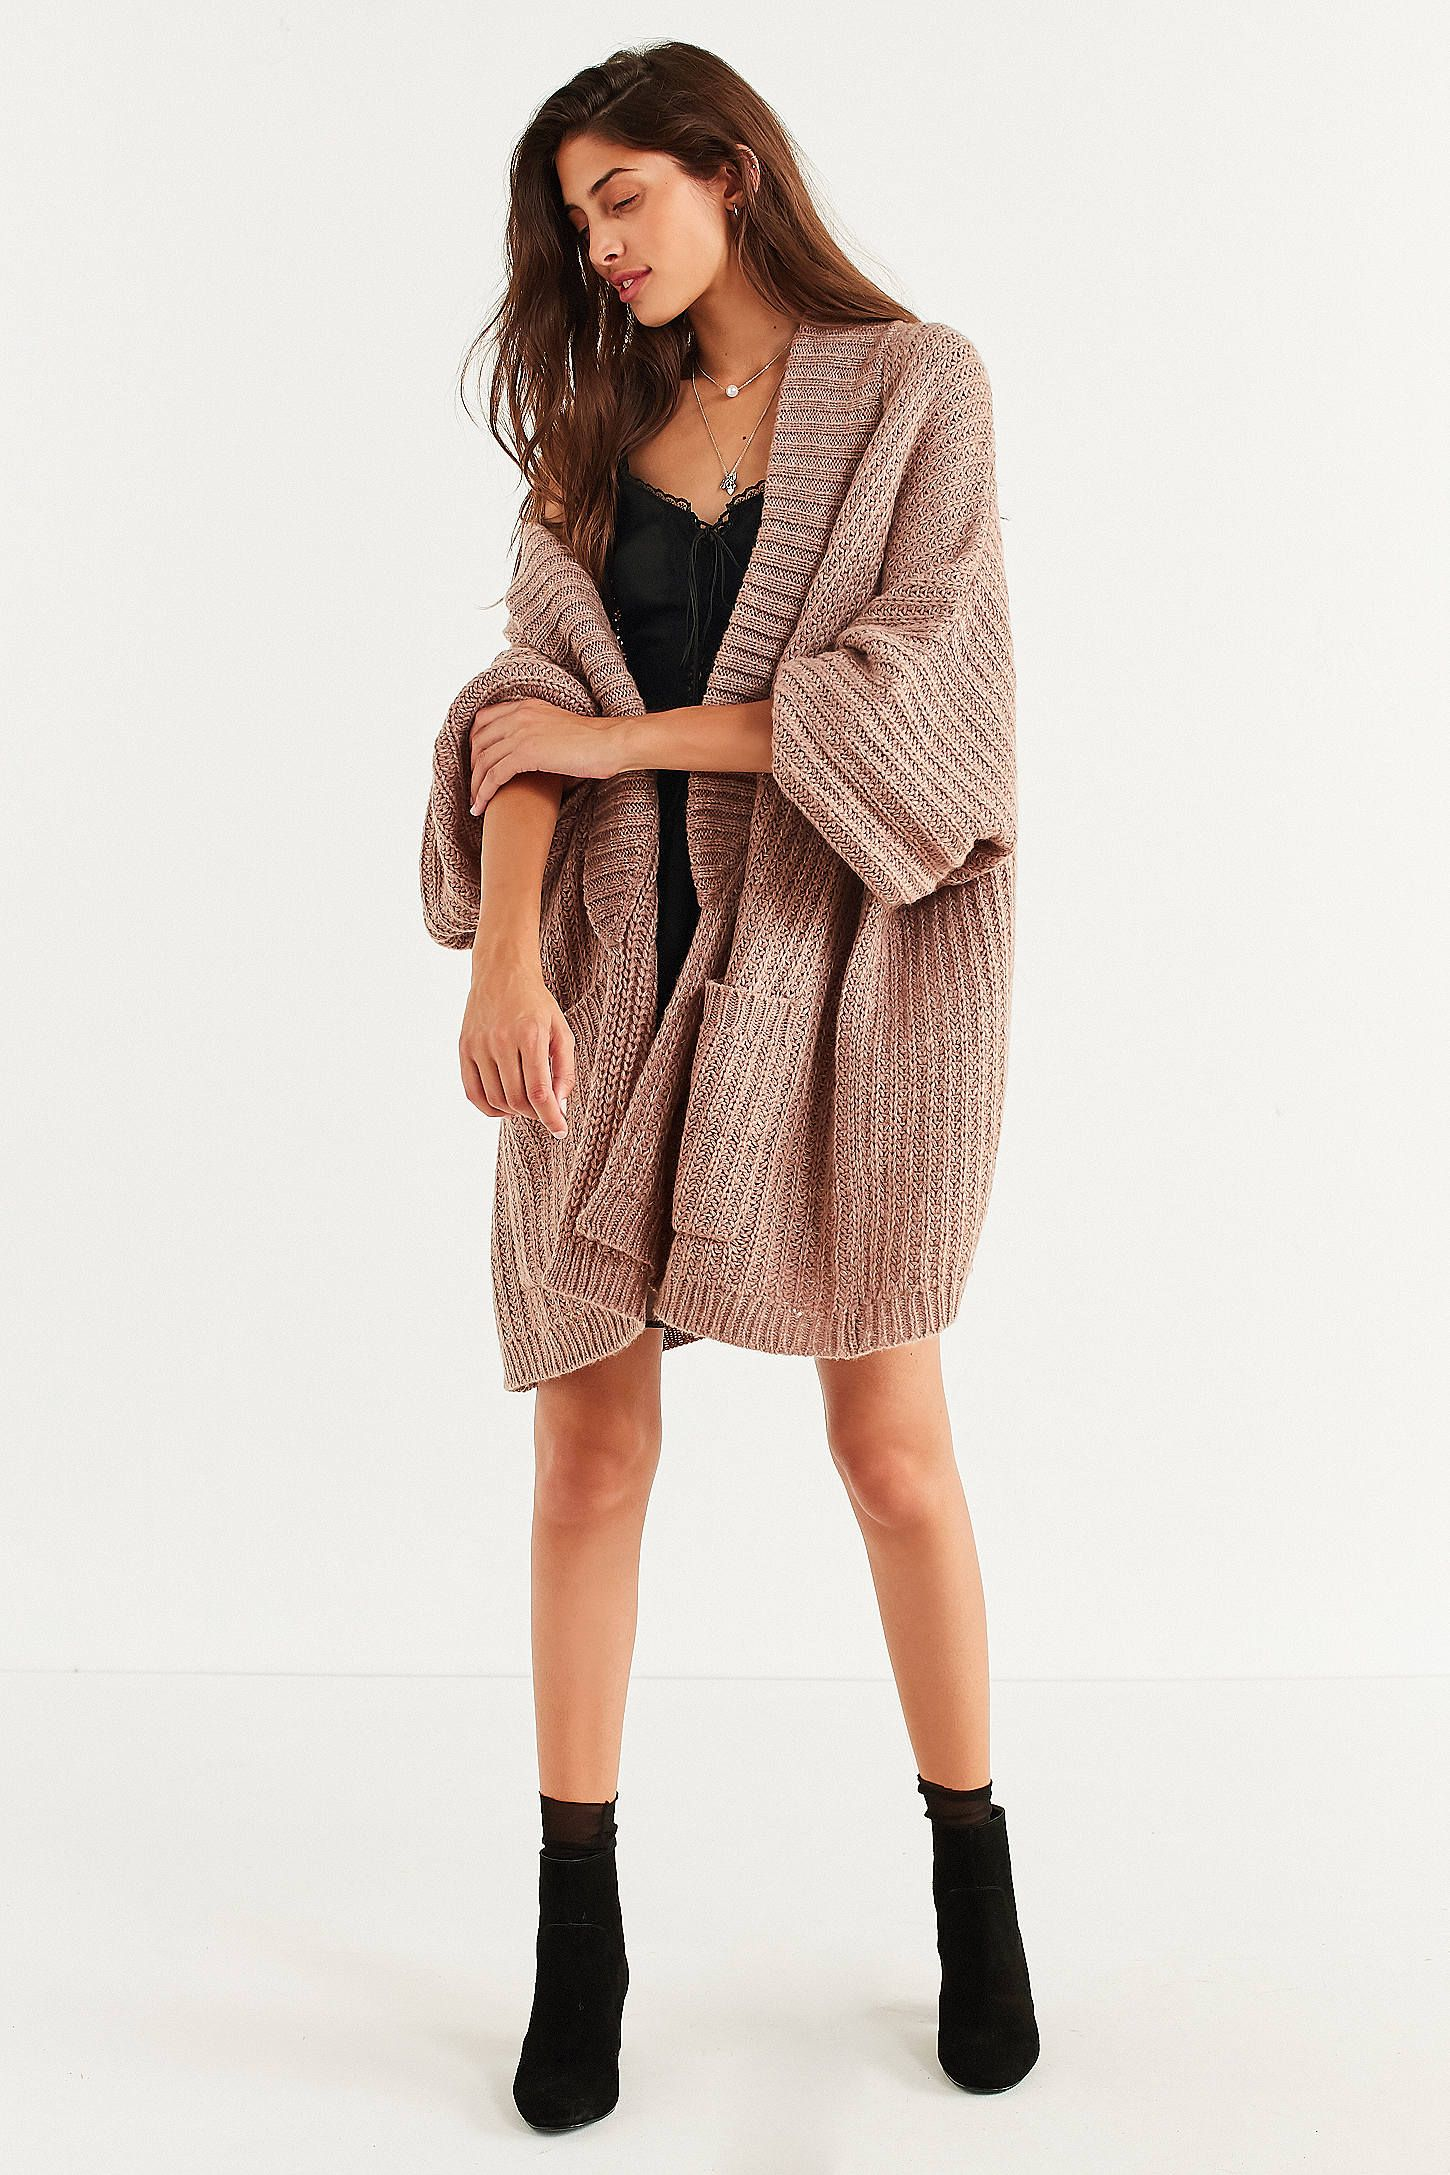 1ca90c3c17 Shop BDG Jesse Oversized Cardigan at Urban Outfitters today. We carry all  the latest styles